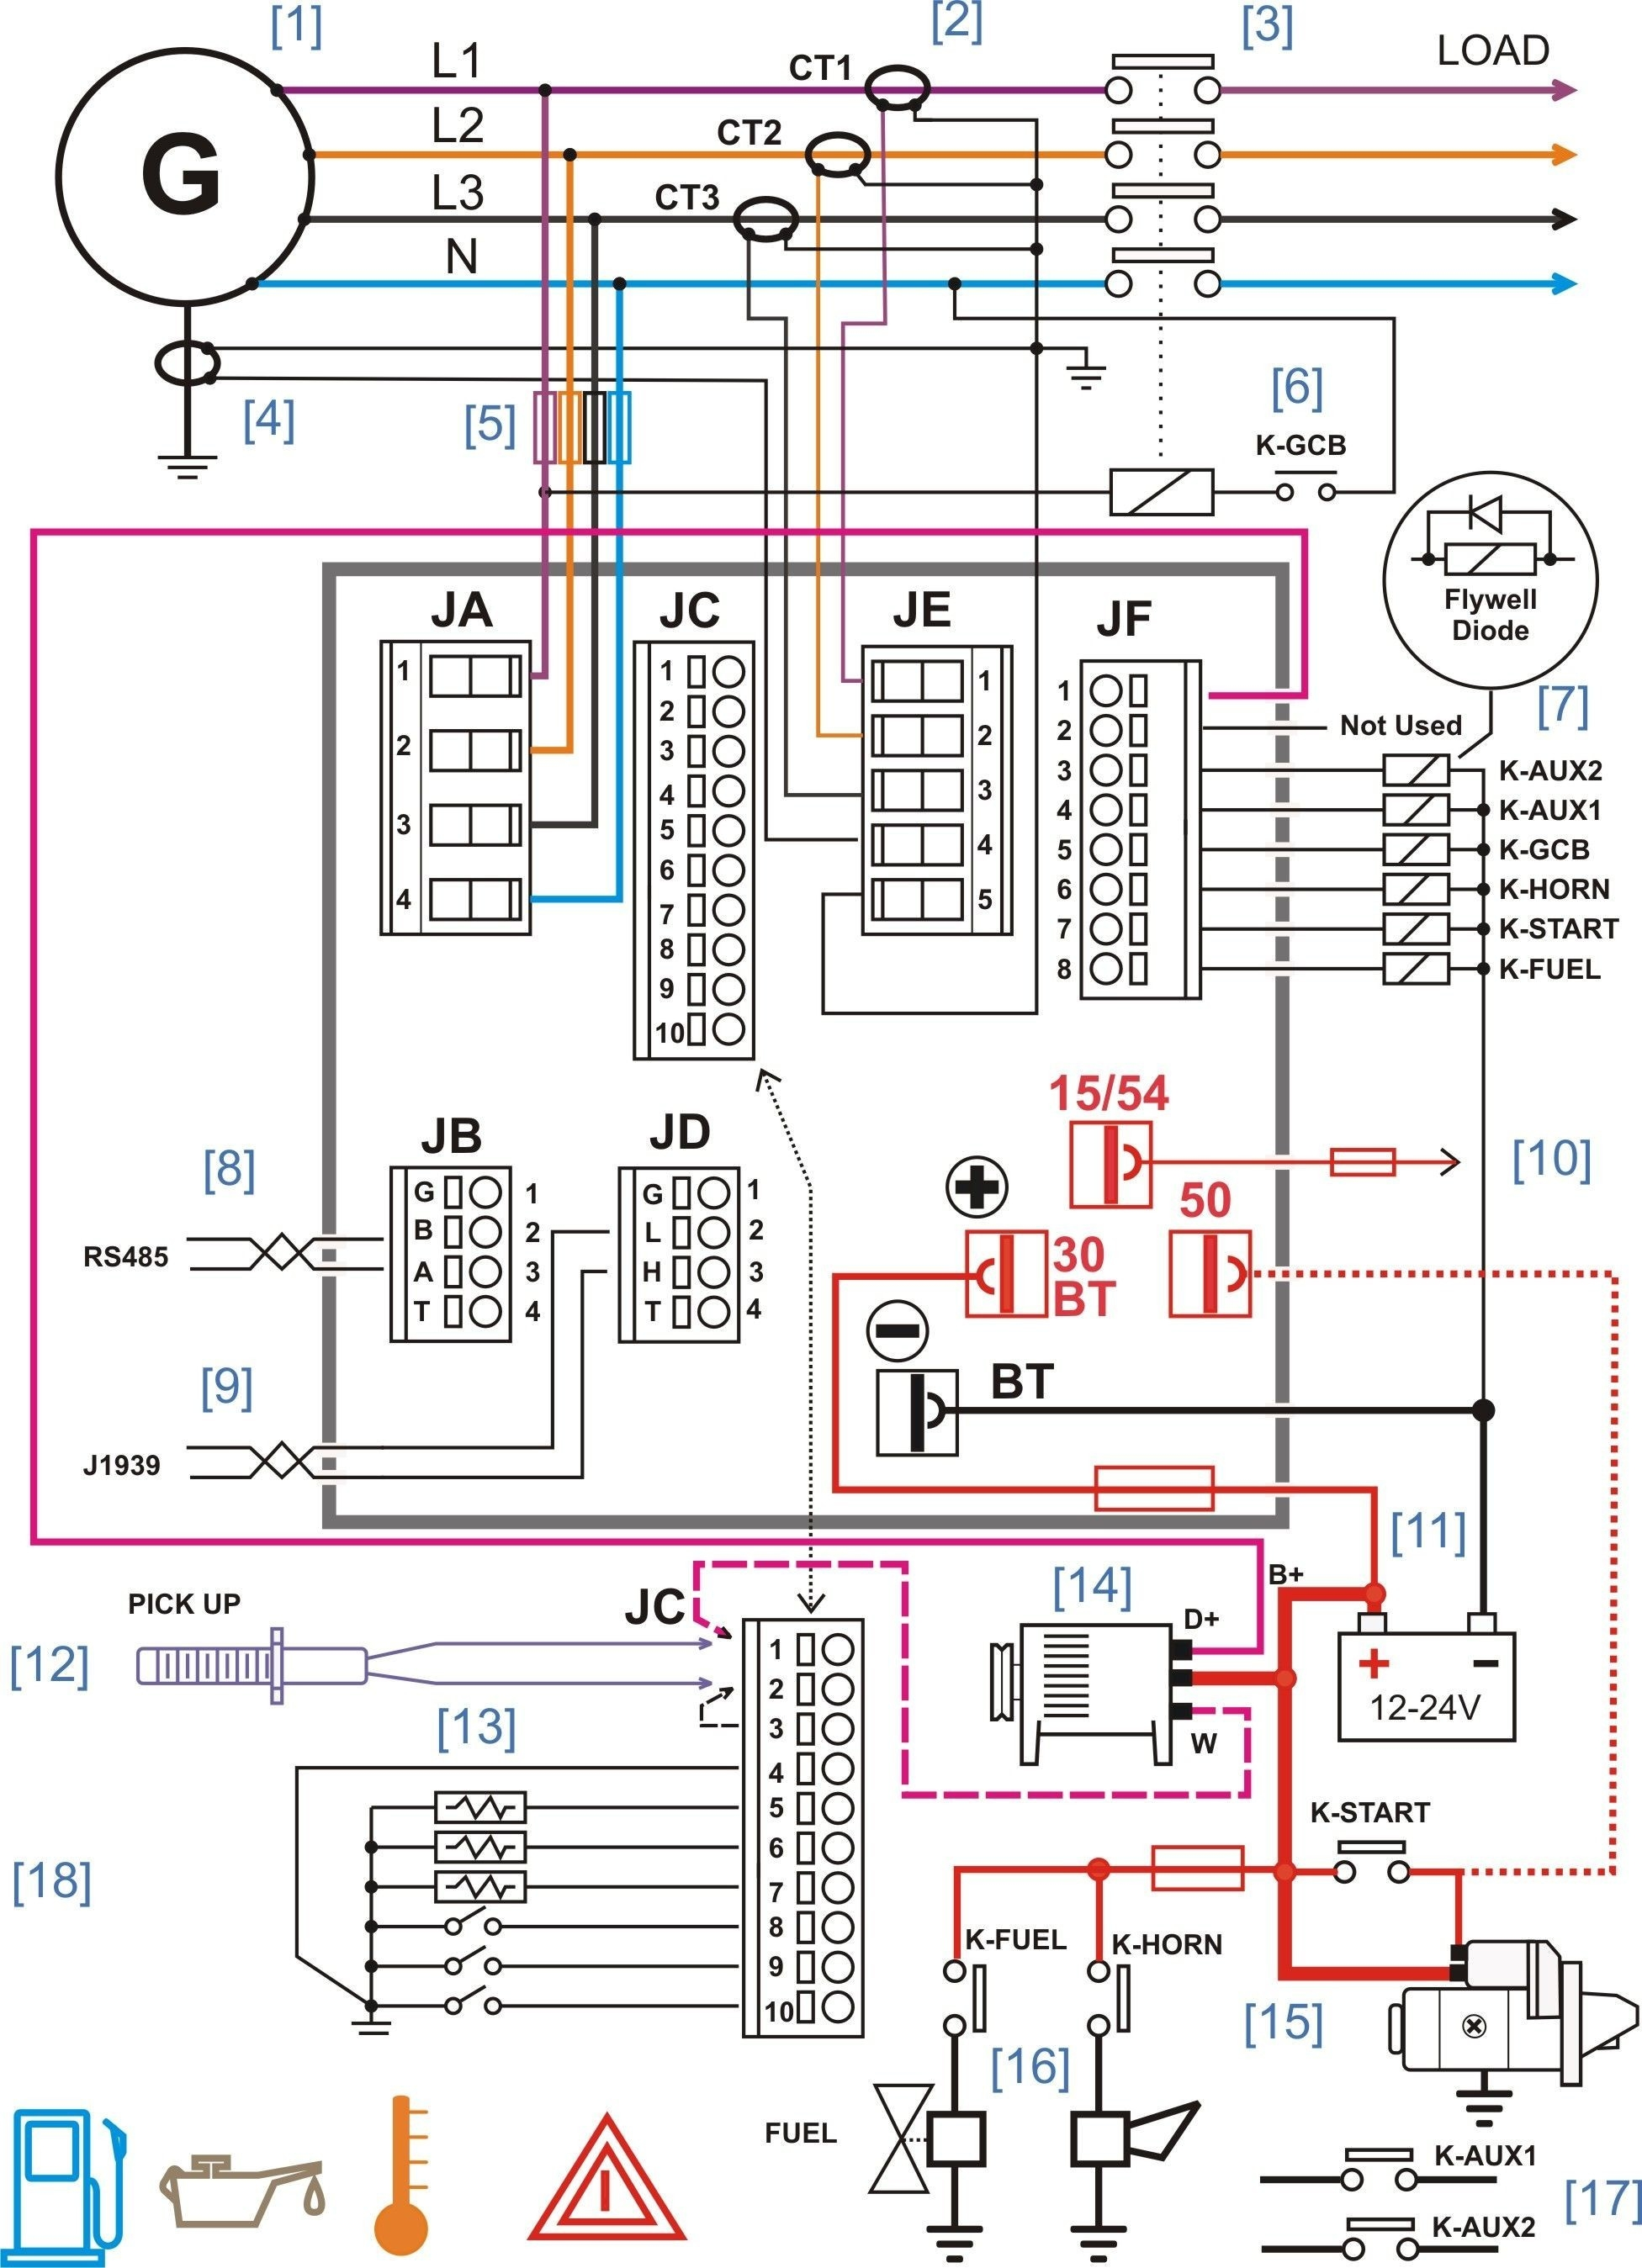 50 amp transfer switch wiring diagram Download-Wiring Diagram for 20kw Generac Generator Inspirationa Wiring Diagram Backup Generator & Portable Generator Transfer 10-p